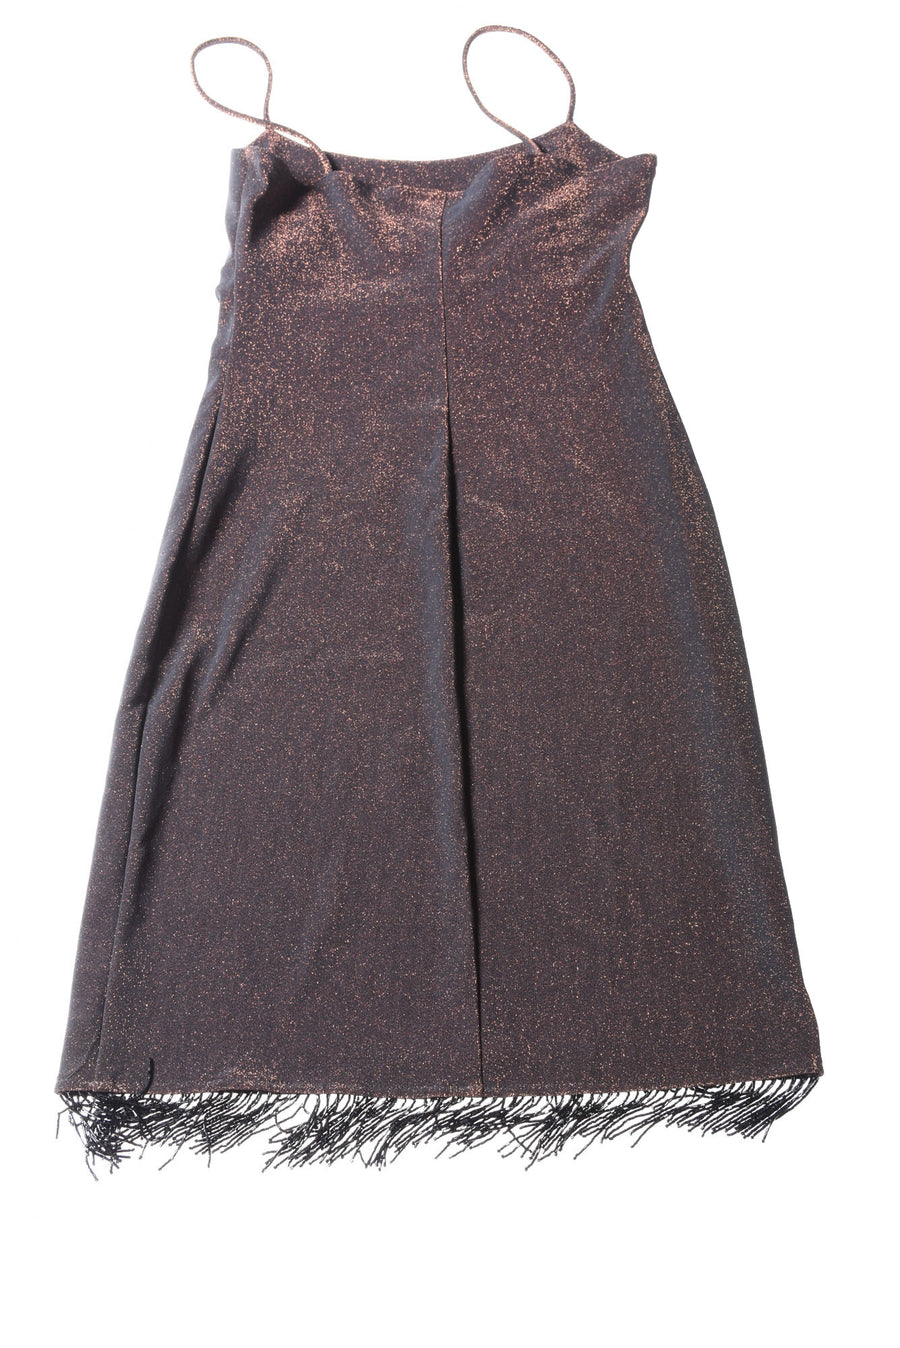 Women's Dress By City Triangles